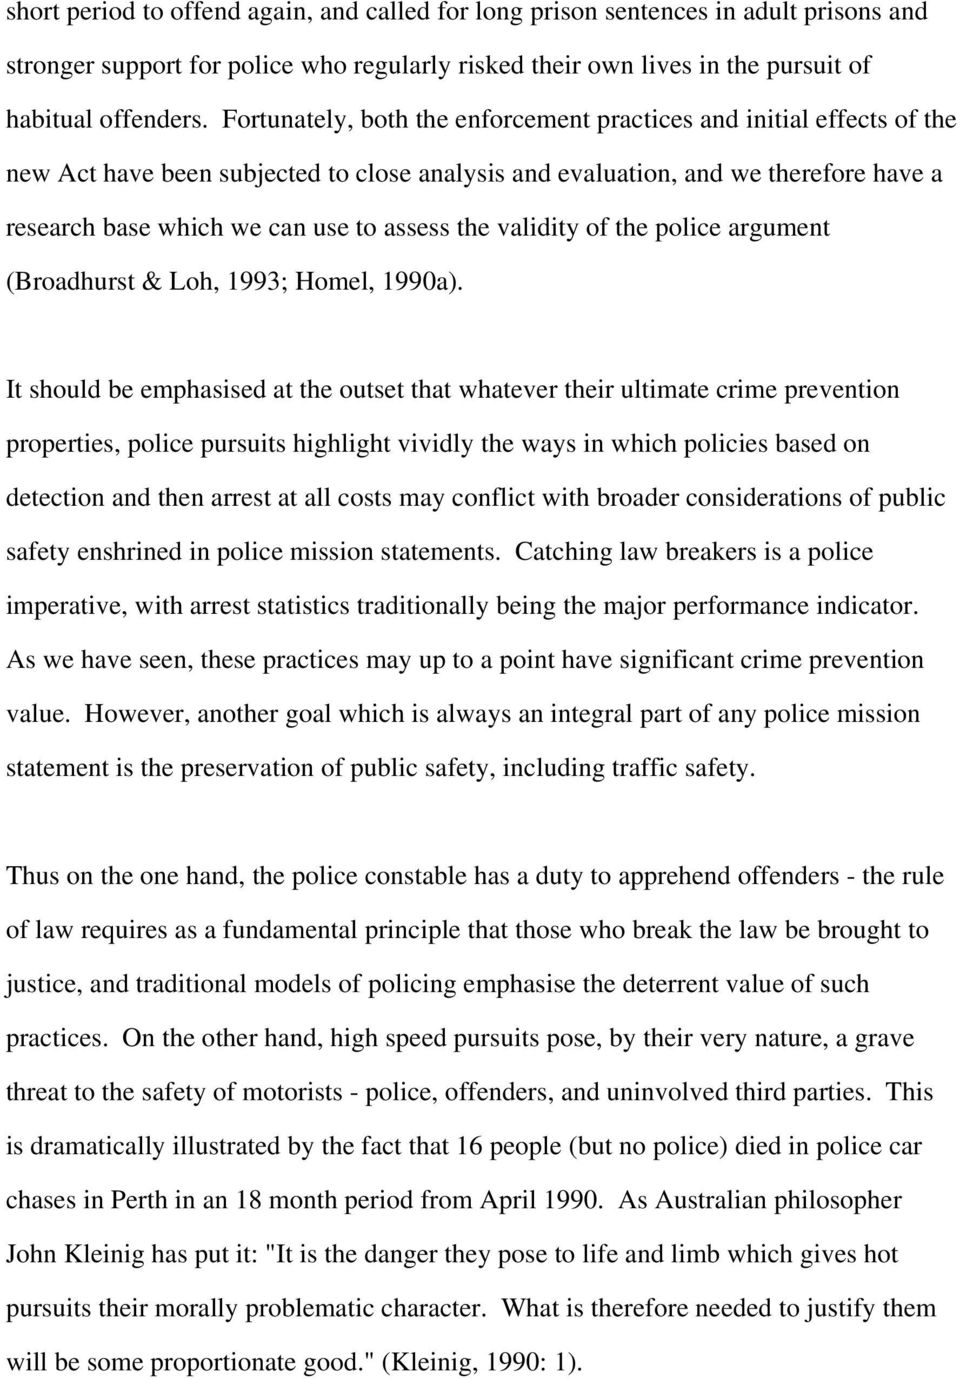 the validity of the police argument (Broadhurst & Loh, 1993; Homel, 1990a).